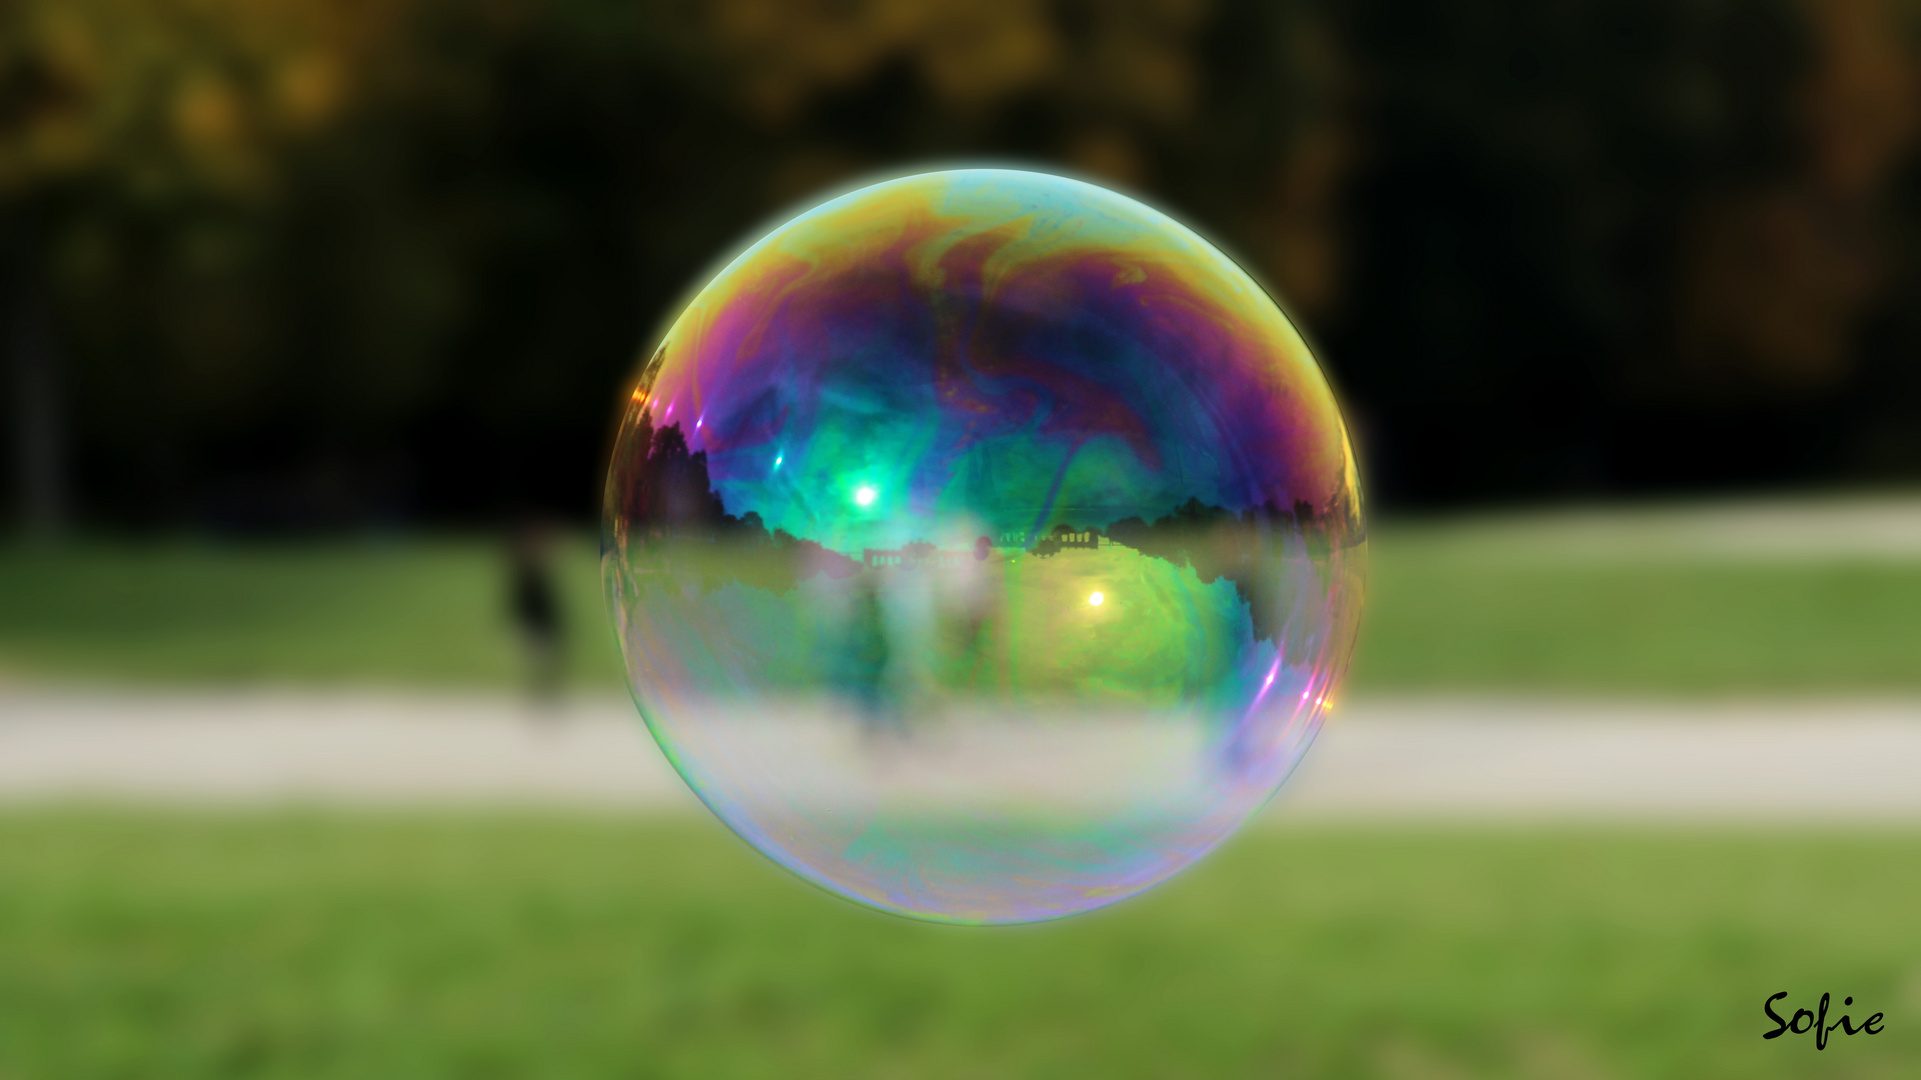 Captured in a bubble